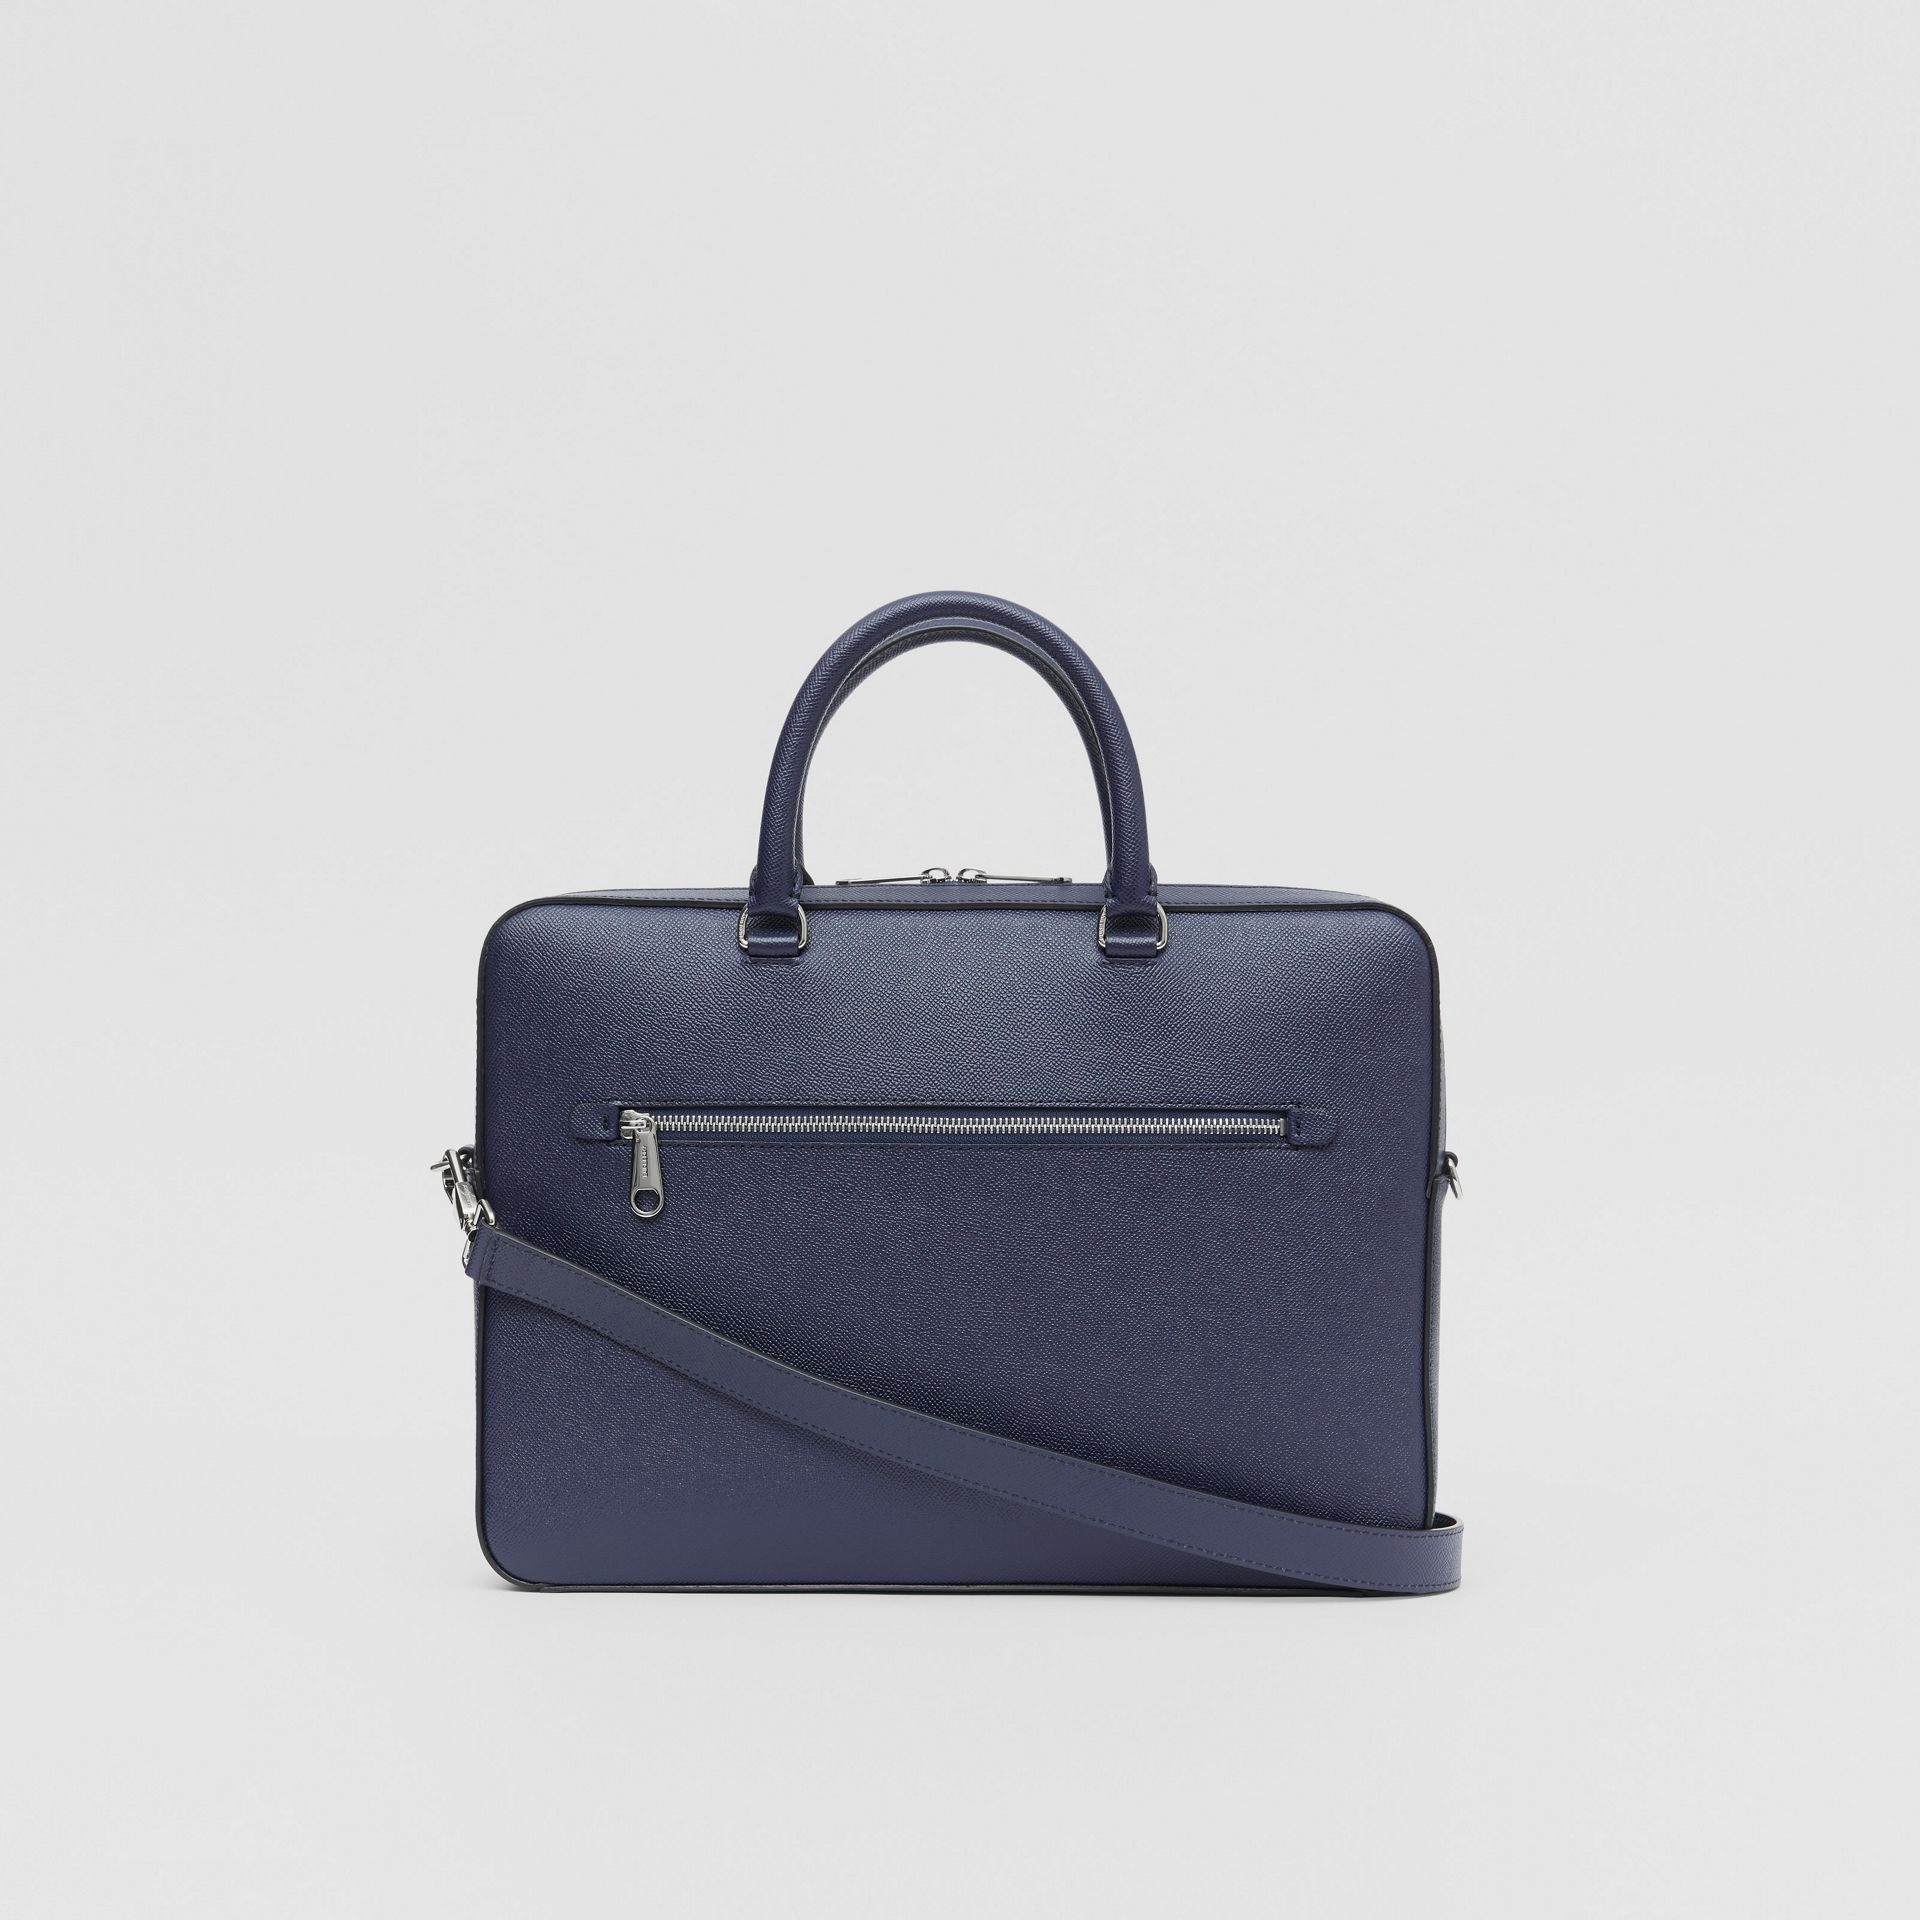 Attaché-case en cuir grainé (Bleu Régence) - Homme | Burberry - photo de la galerie 7